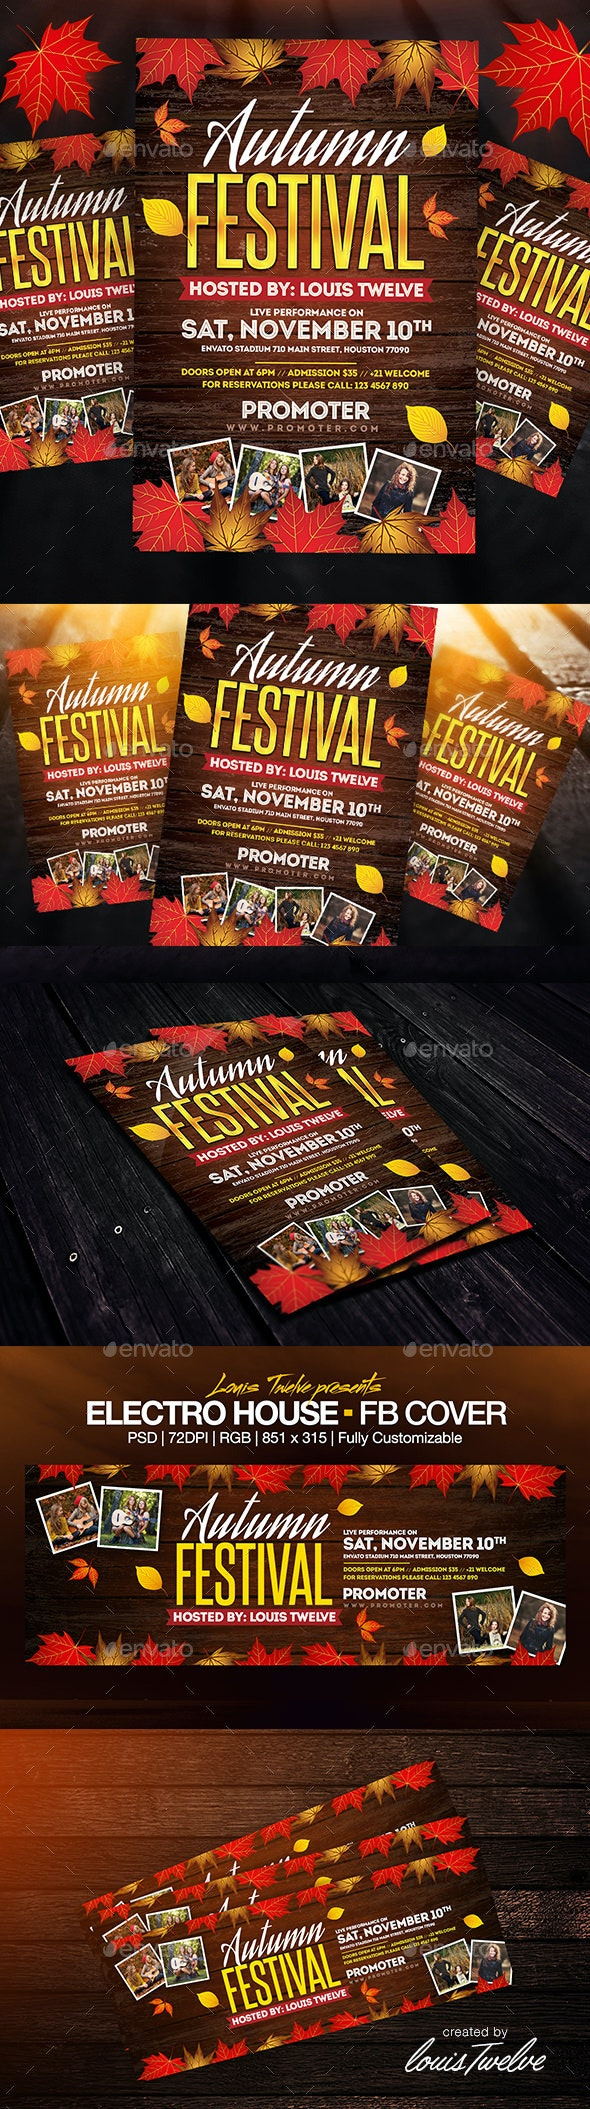 Autumn Festival Flyer + FB Cover - Clubs & Parties Events